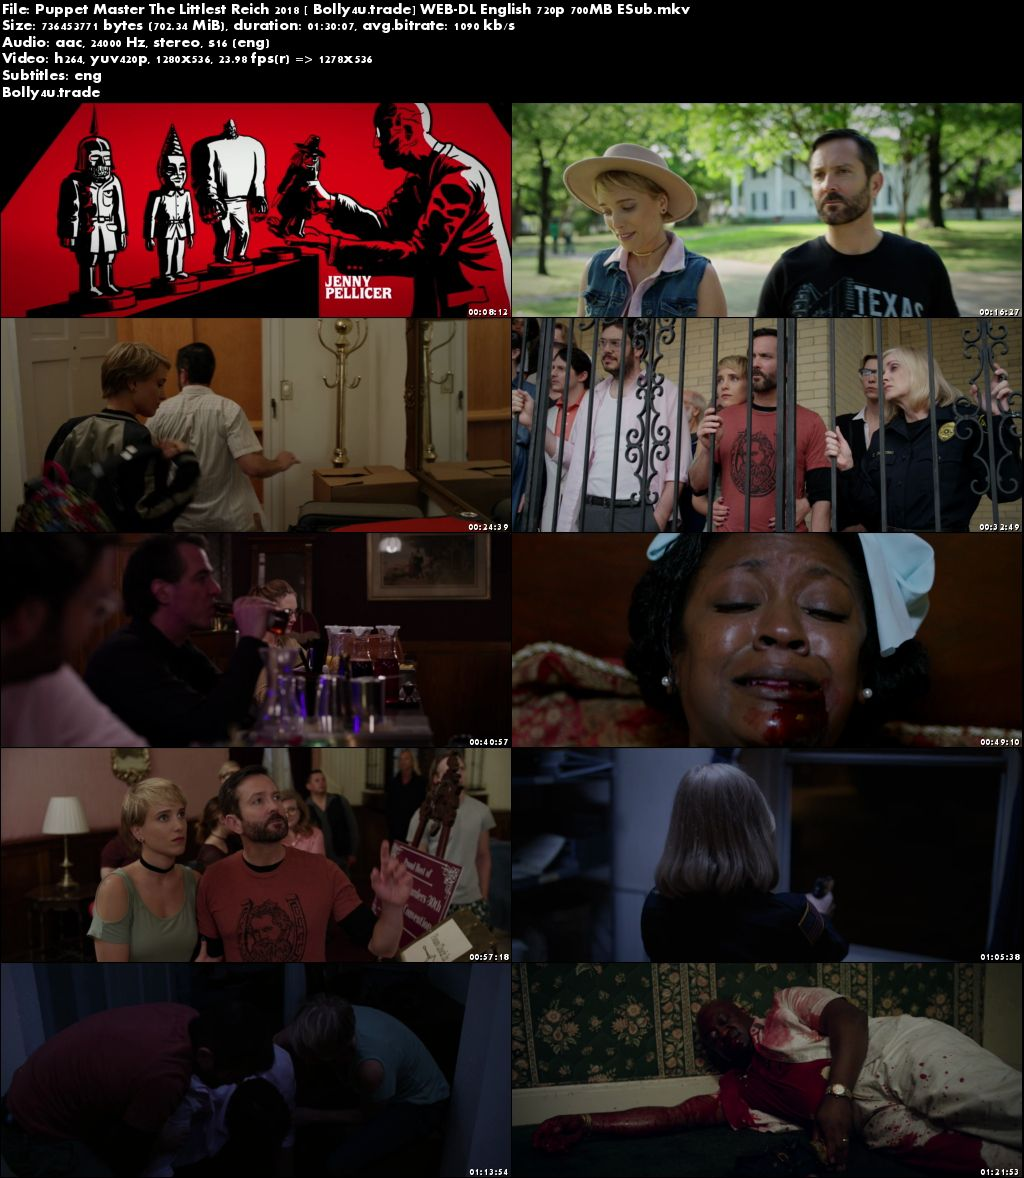 Puppet Master The Littlest Reich 2018 WEB-DL 280MB English 480p ESub Download